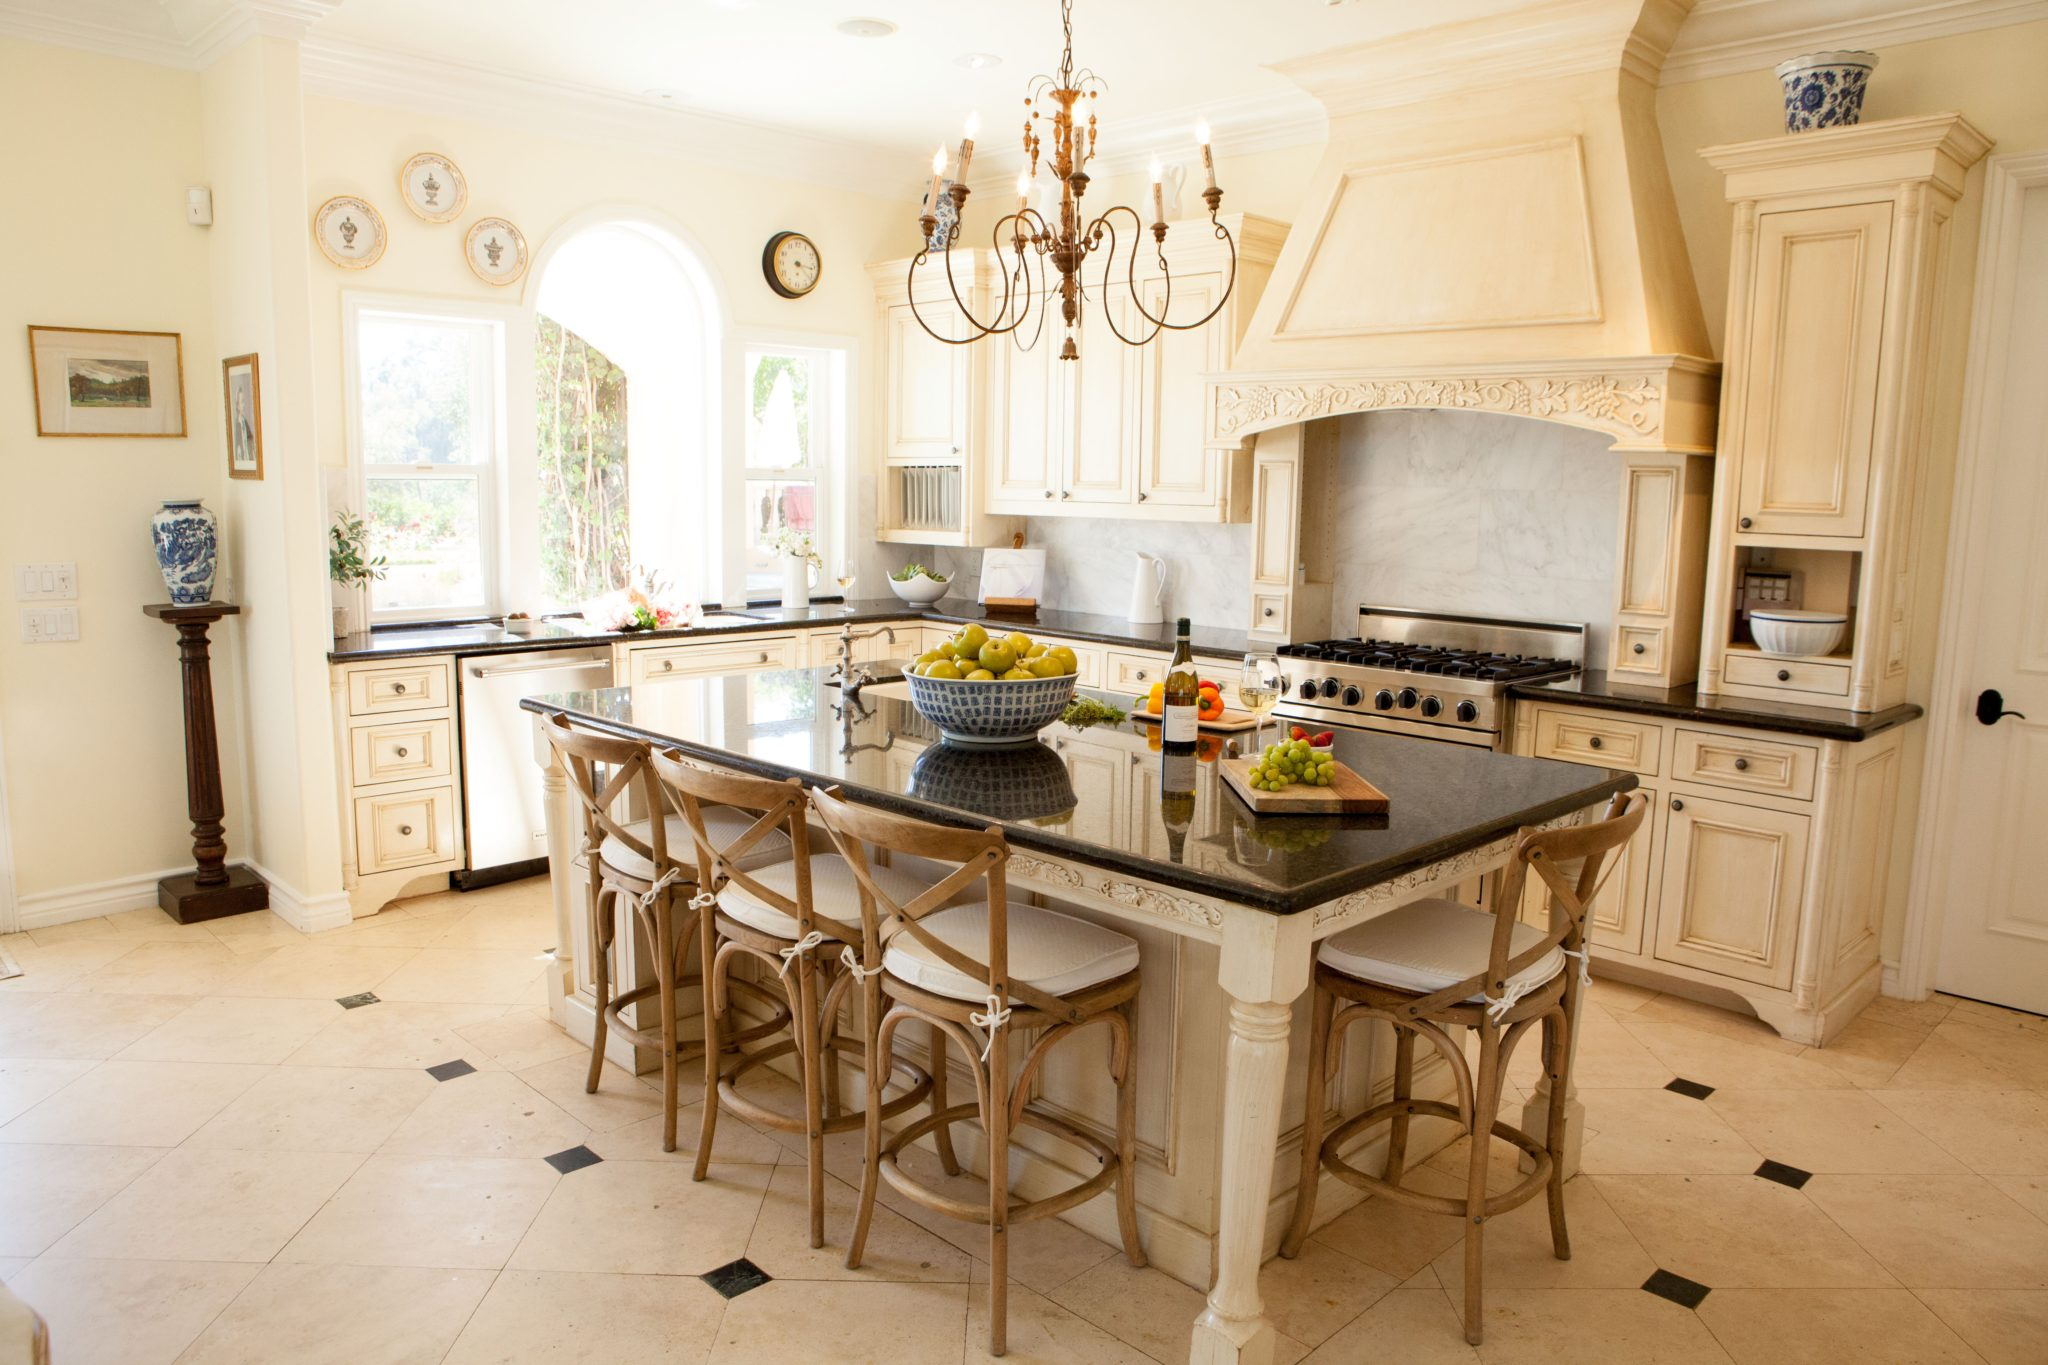 French country kitchen by Amodei